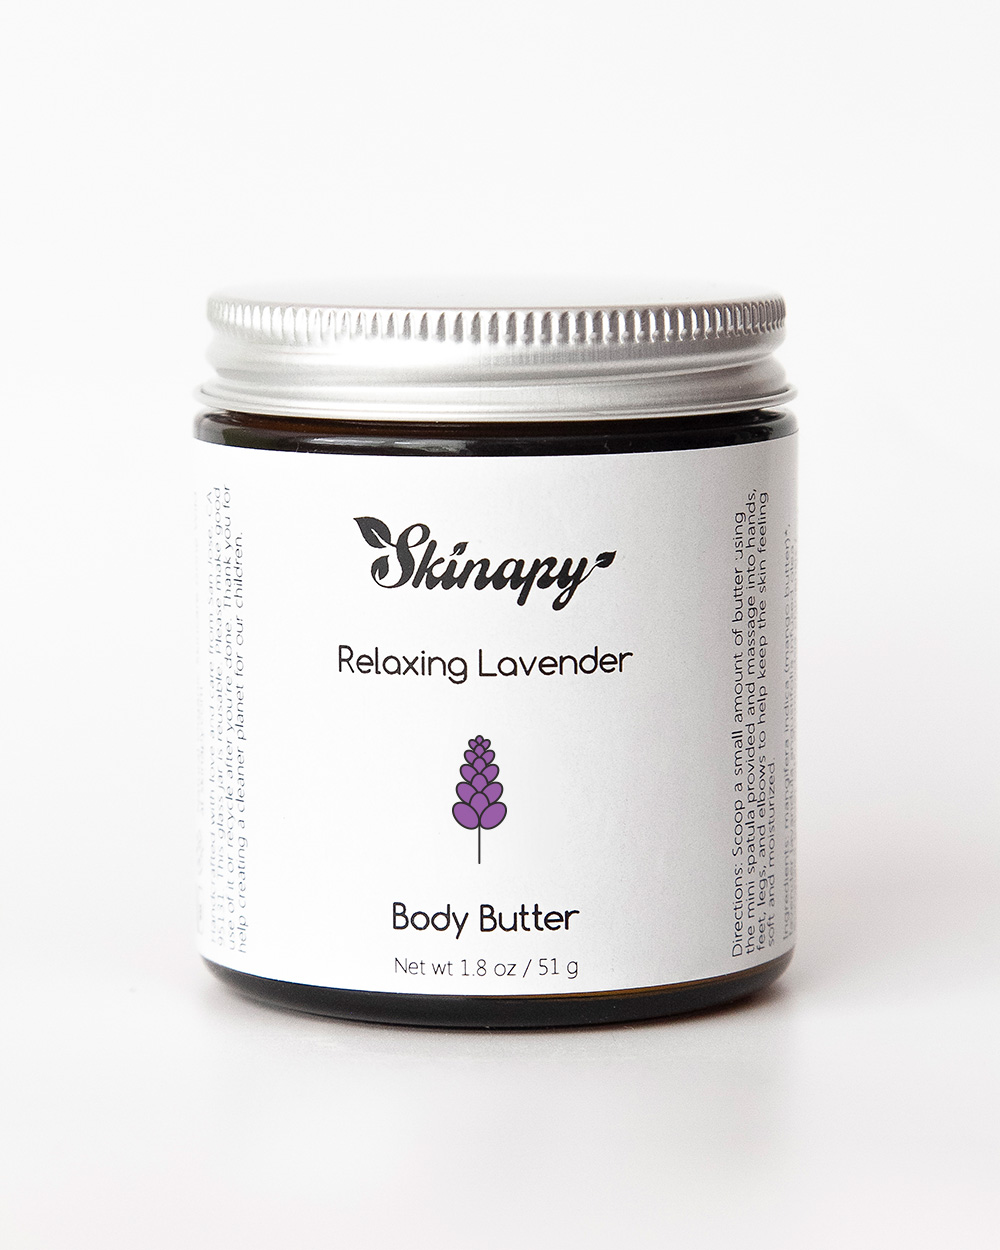 Skinapy natural and organic body butter with lavender scent inside a dark amber glass jar with silver metal aluminum lid